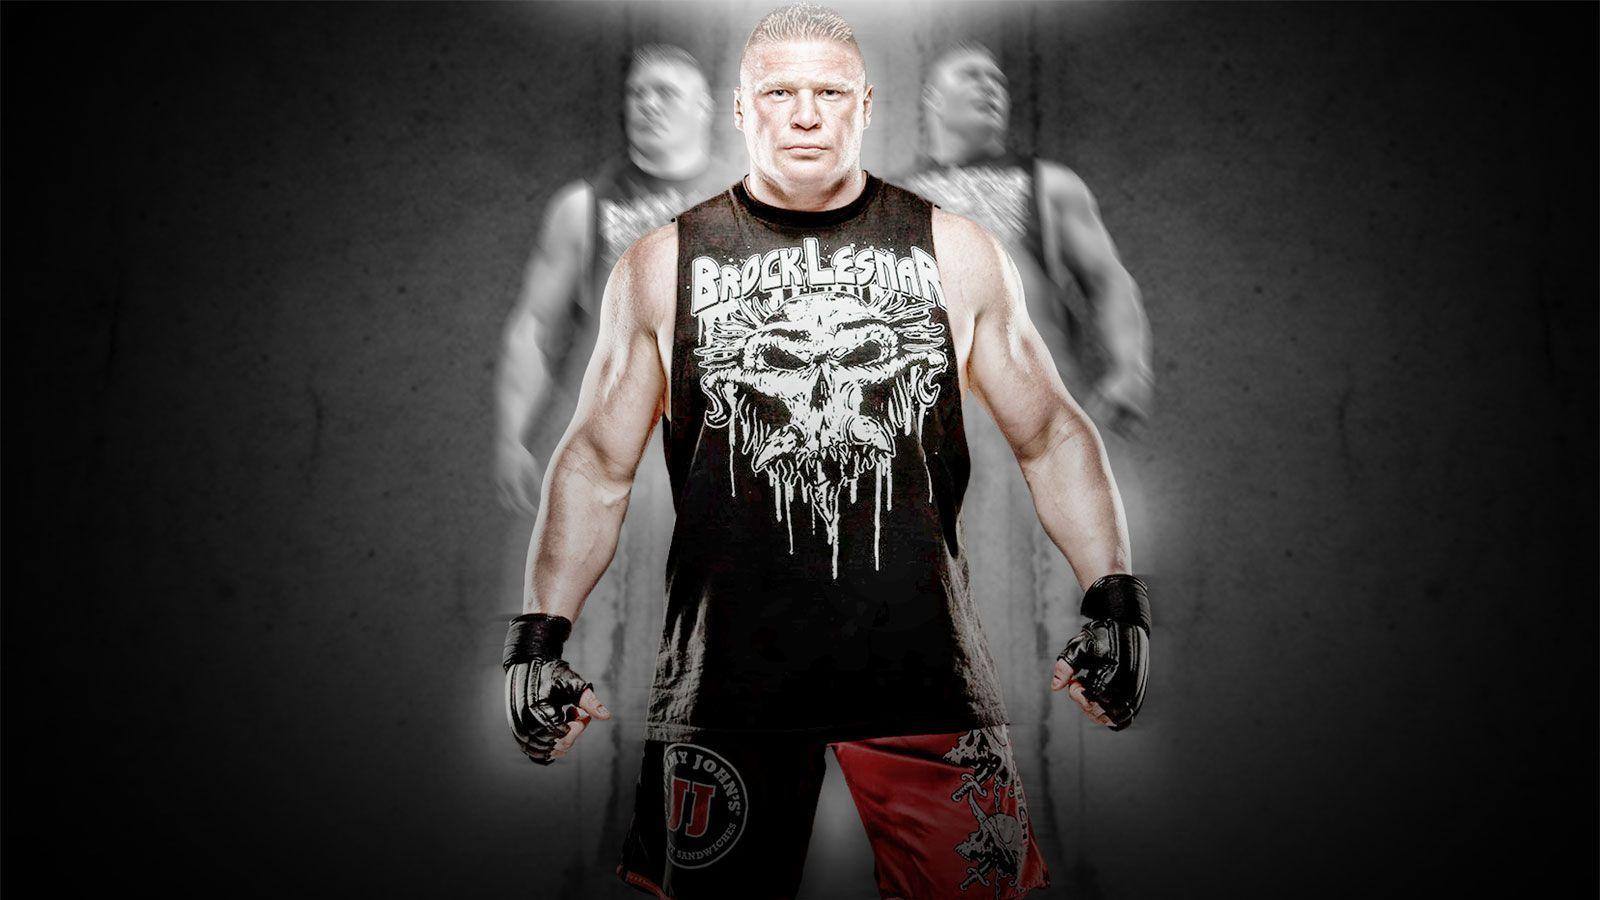 Pin Brock Lesnar Wallpapers